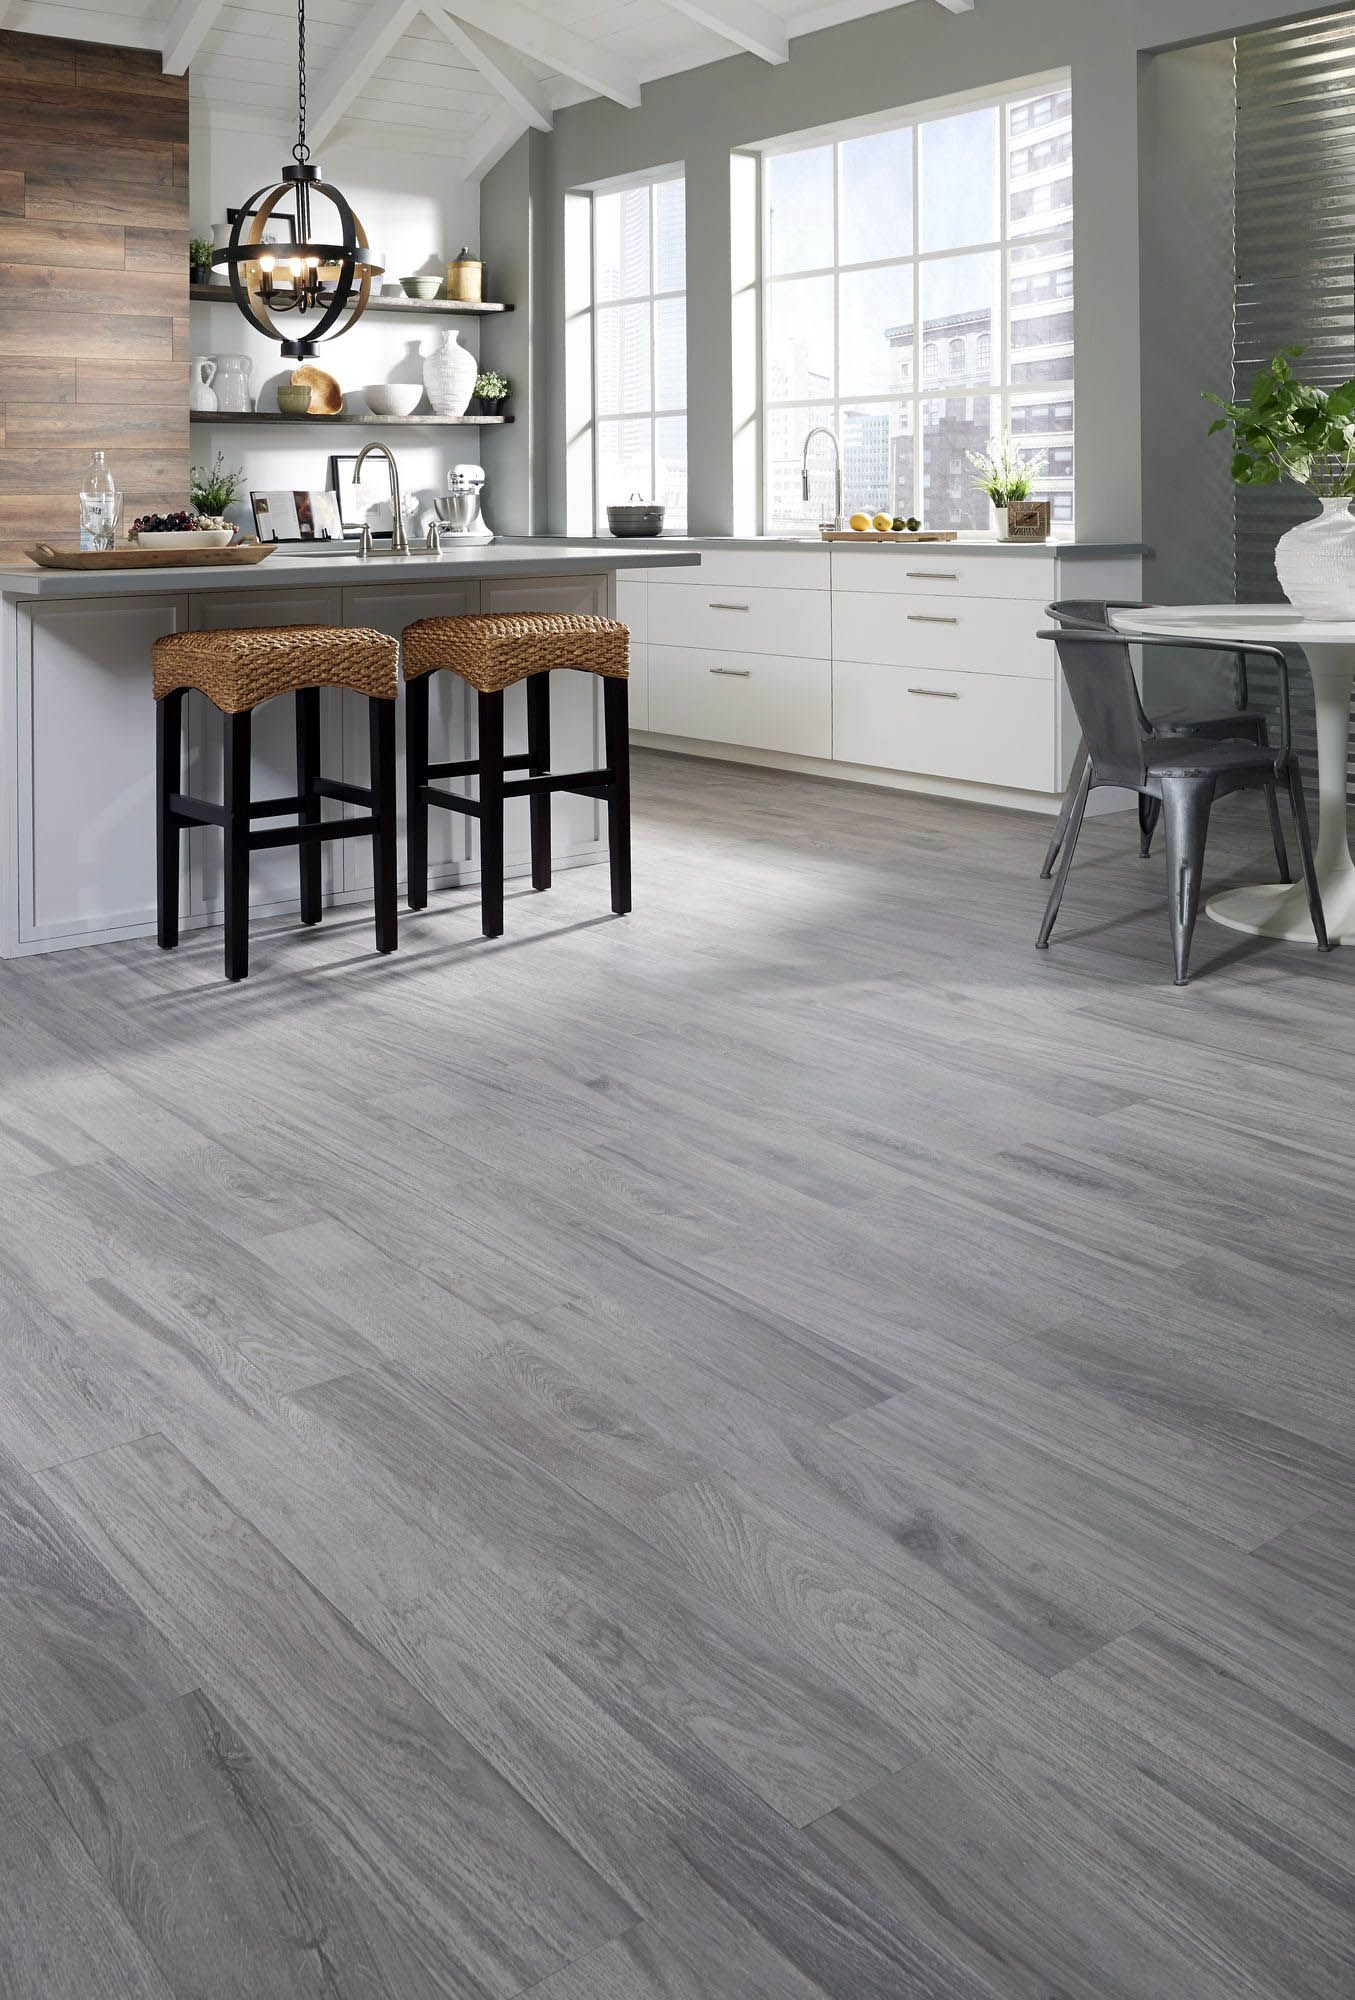 The Ultimate Guide To Kitchen Space Floor Covering Concepts And